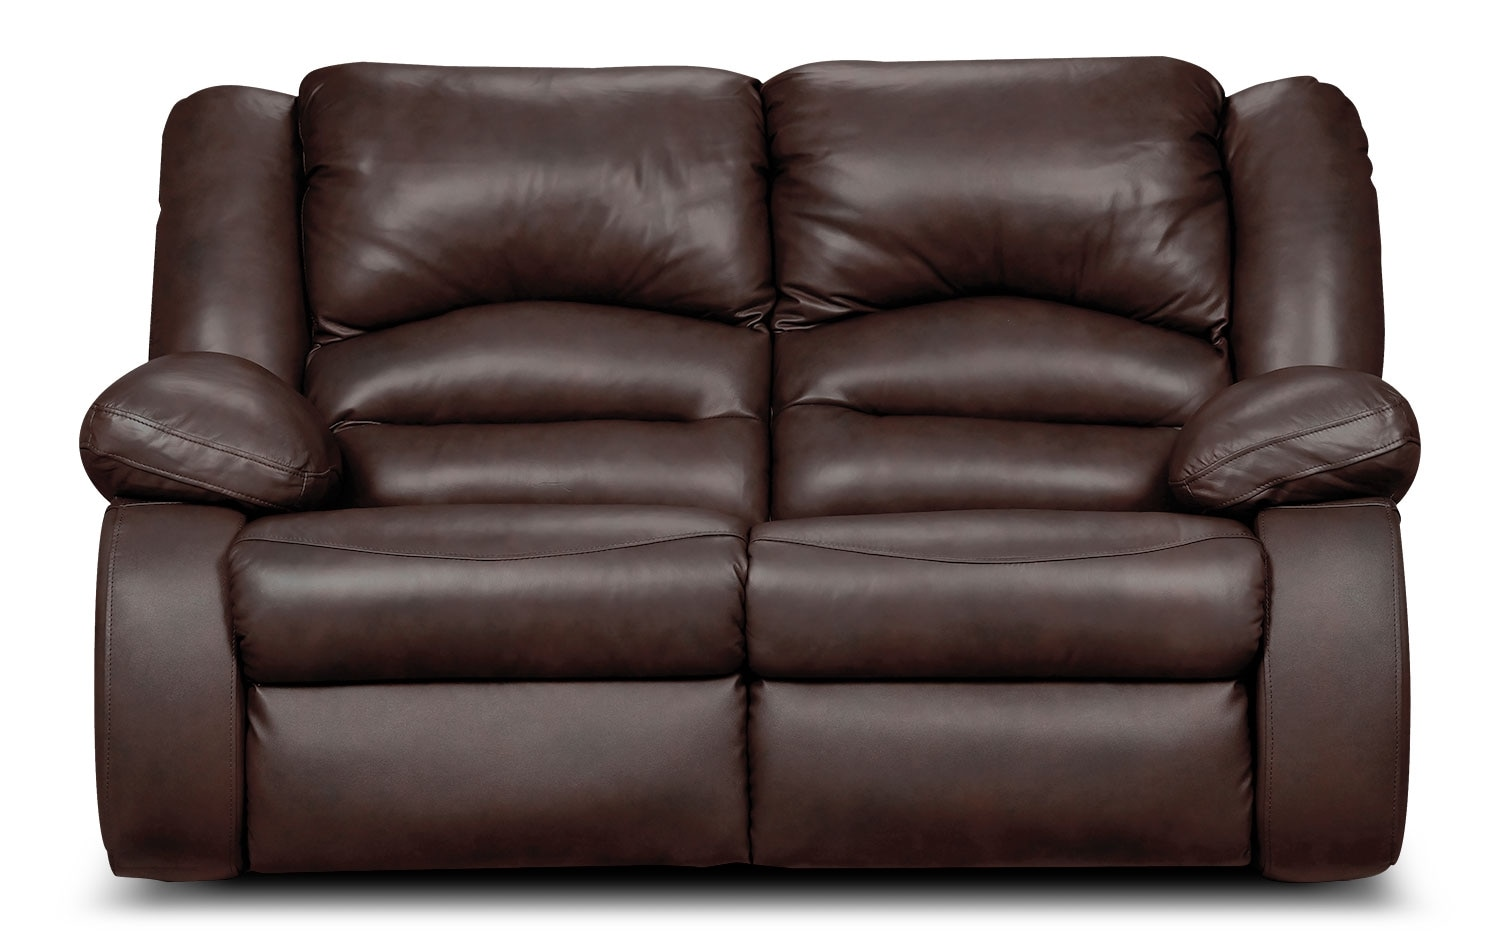 Living Room Furniture - Toreno Brown Genuine Leather Seating  Power Reclining Loveseat